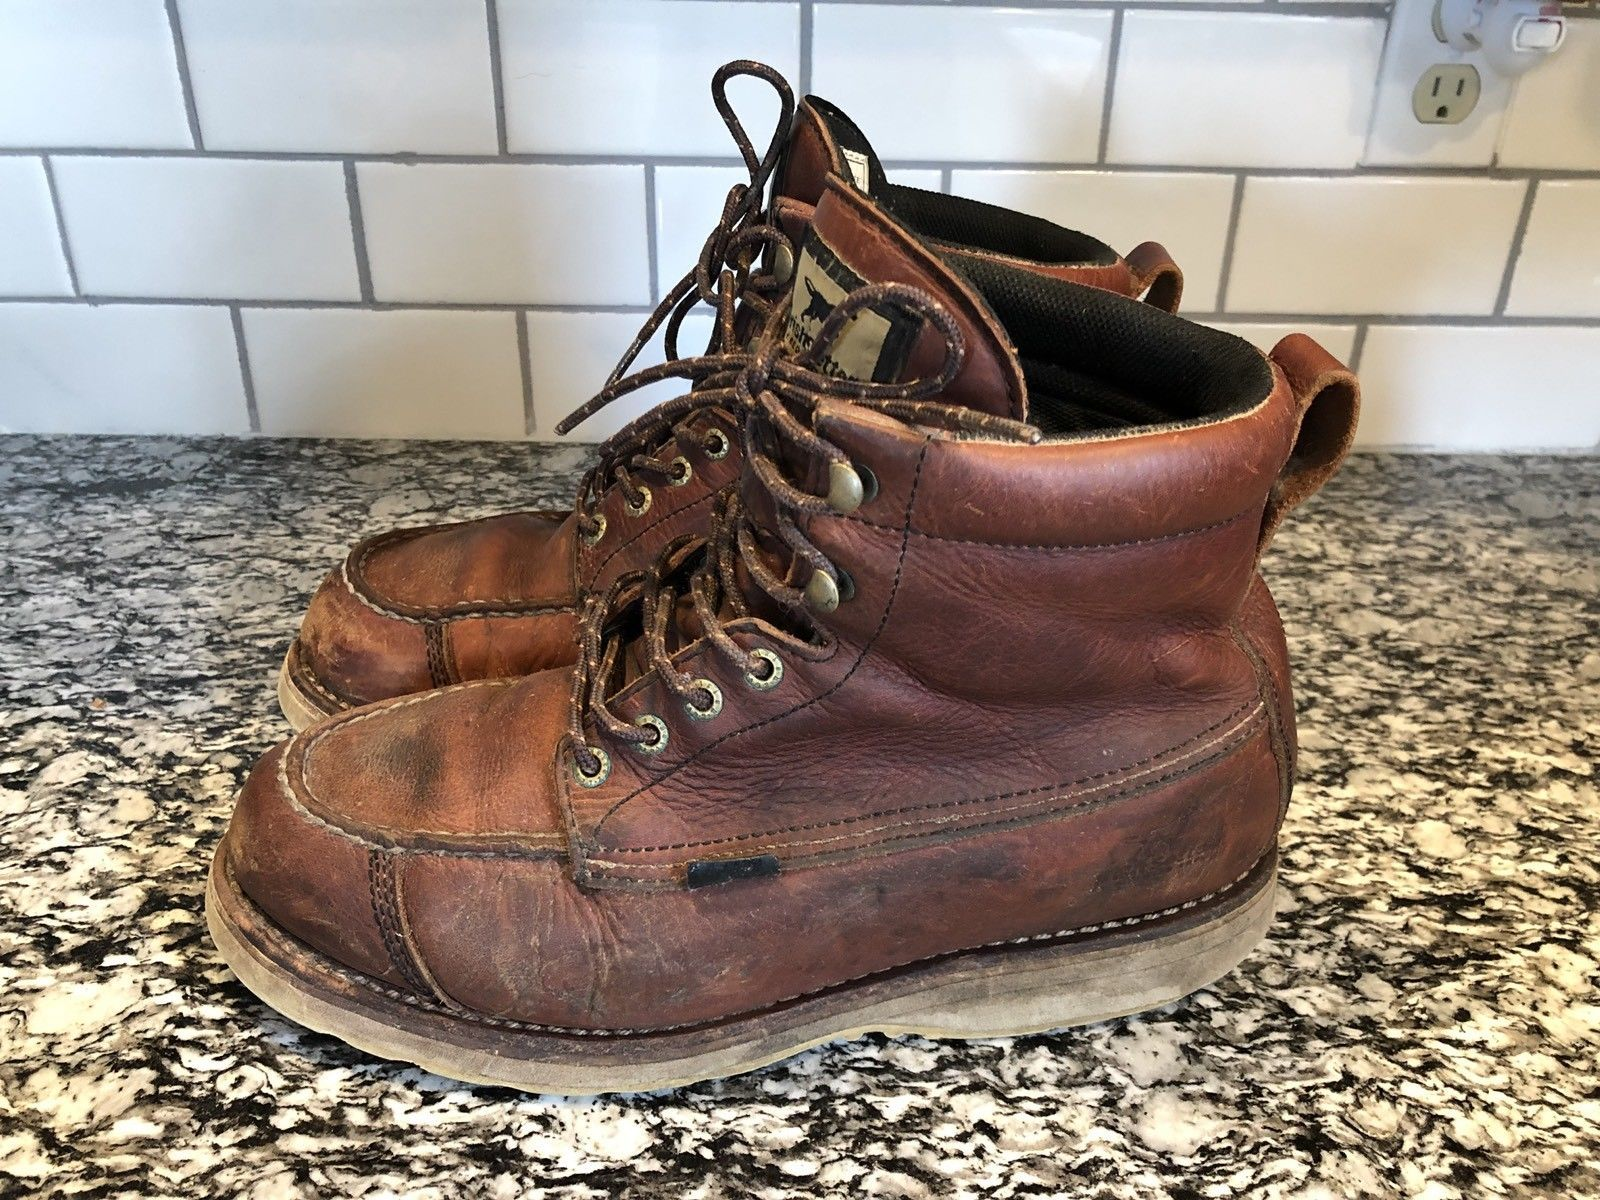 a98bd9ebec9 Men's Irish Setter Red Wing Shoes 838 WINGSHOOTER Leather Boots Size ...